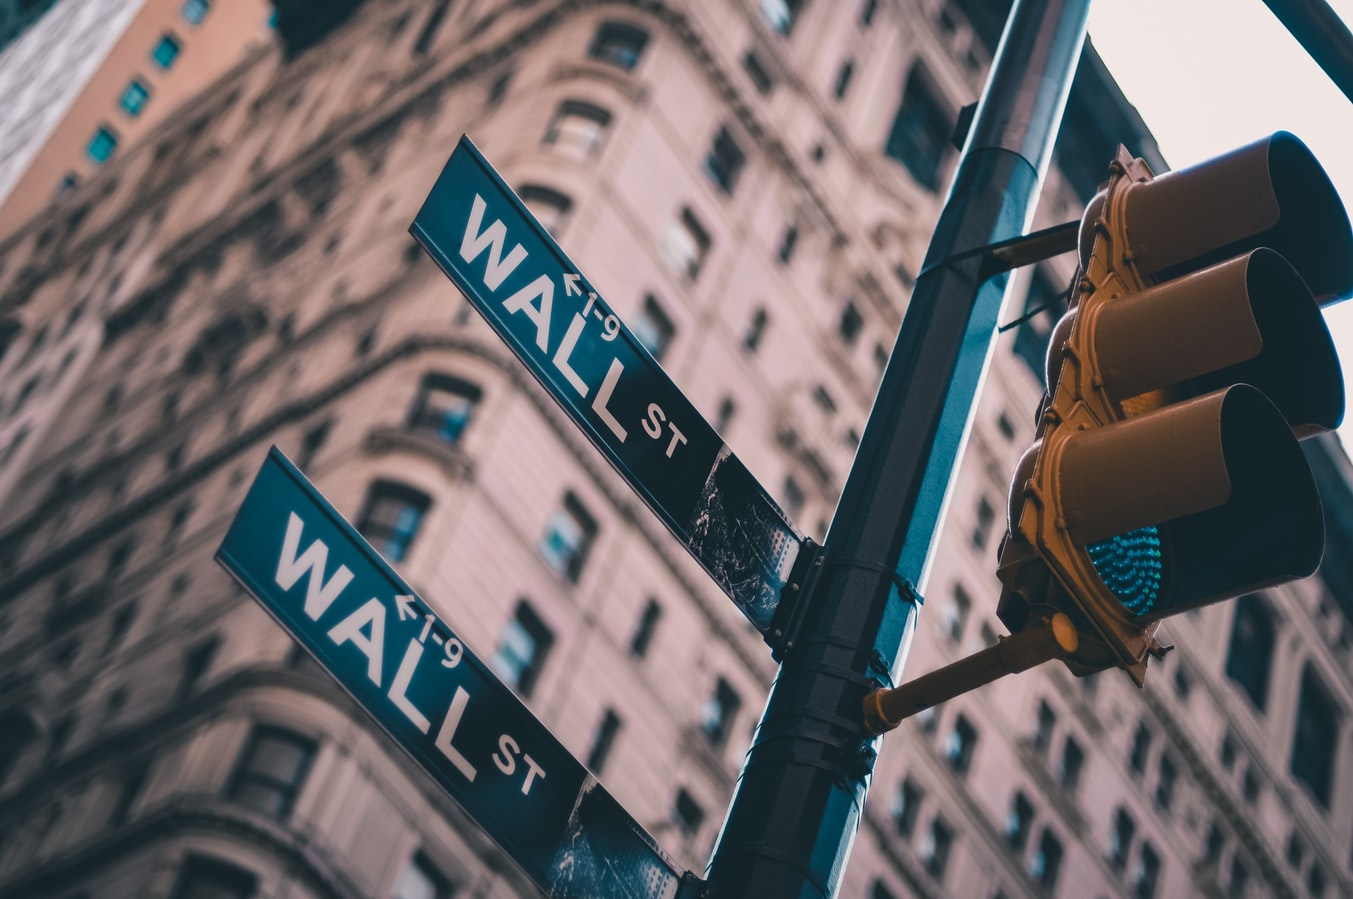 Lo Lo Unsplash - Wall Street